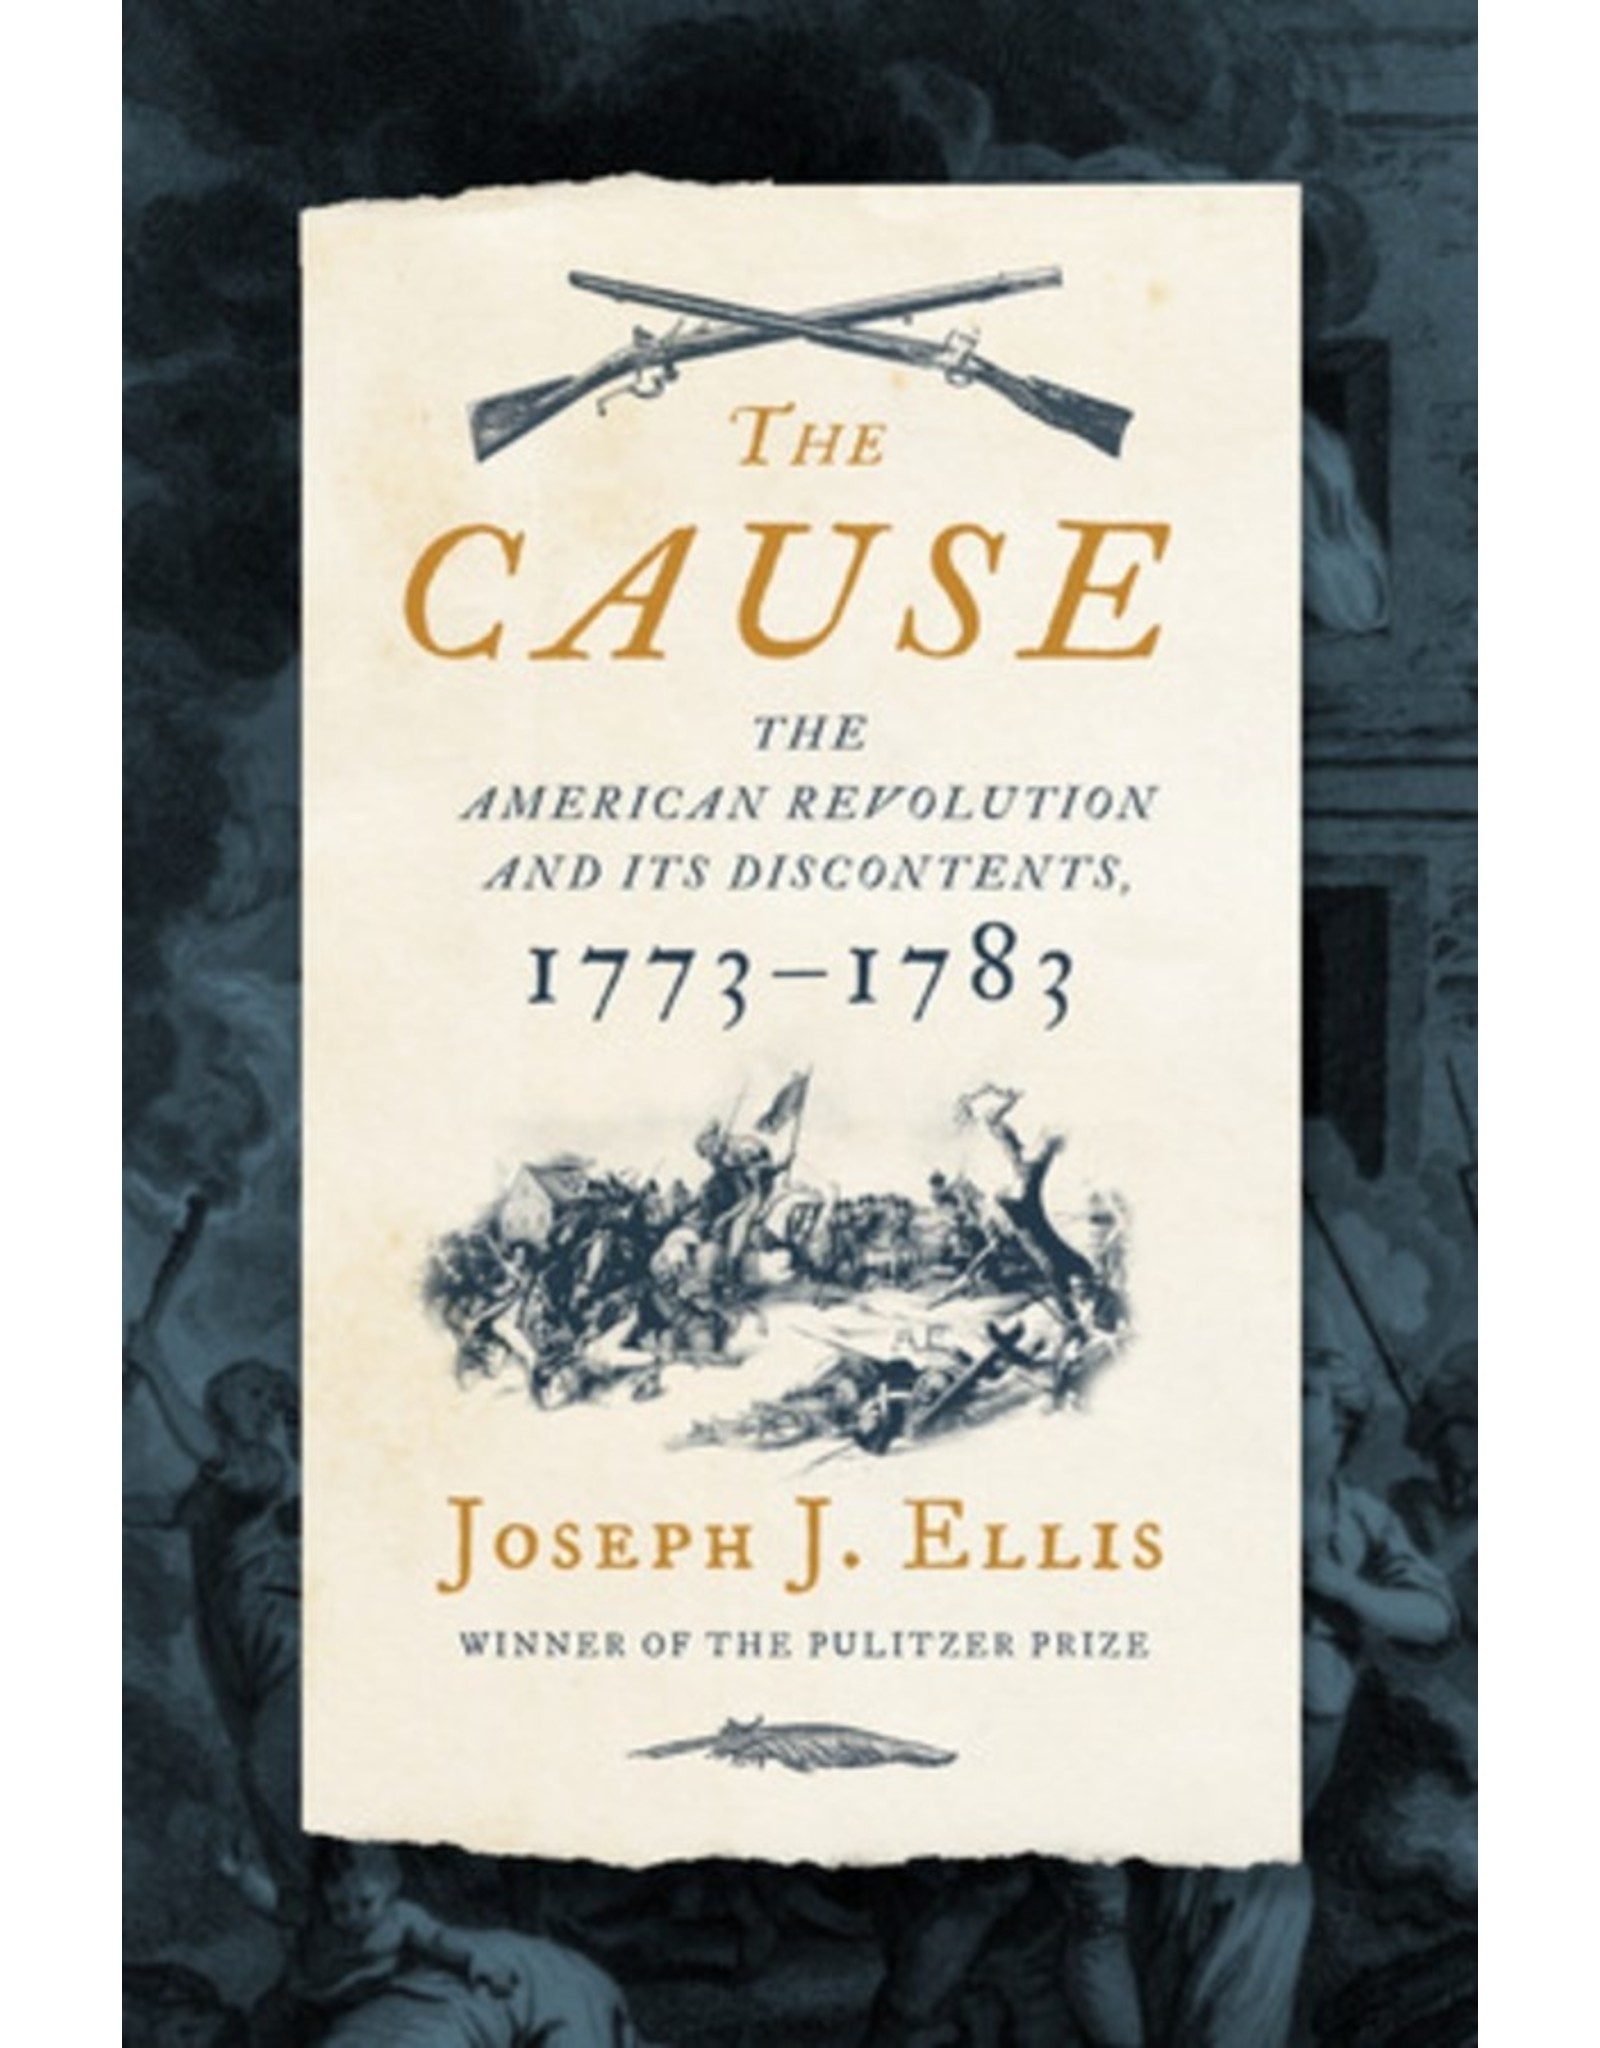 Books The Cause: The American Revolution and Its Discontents 1773-1783 by Joseph J. Ellis (Holiday Catalog 21)